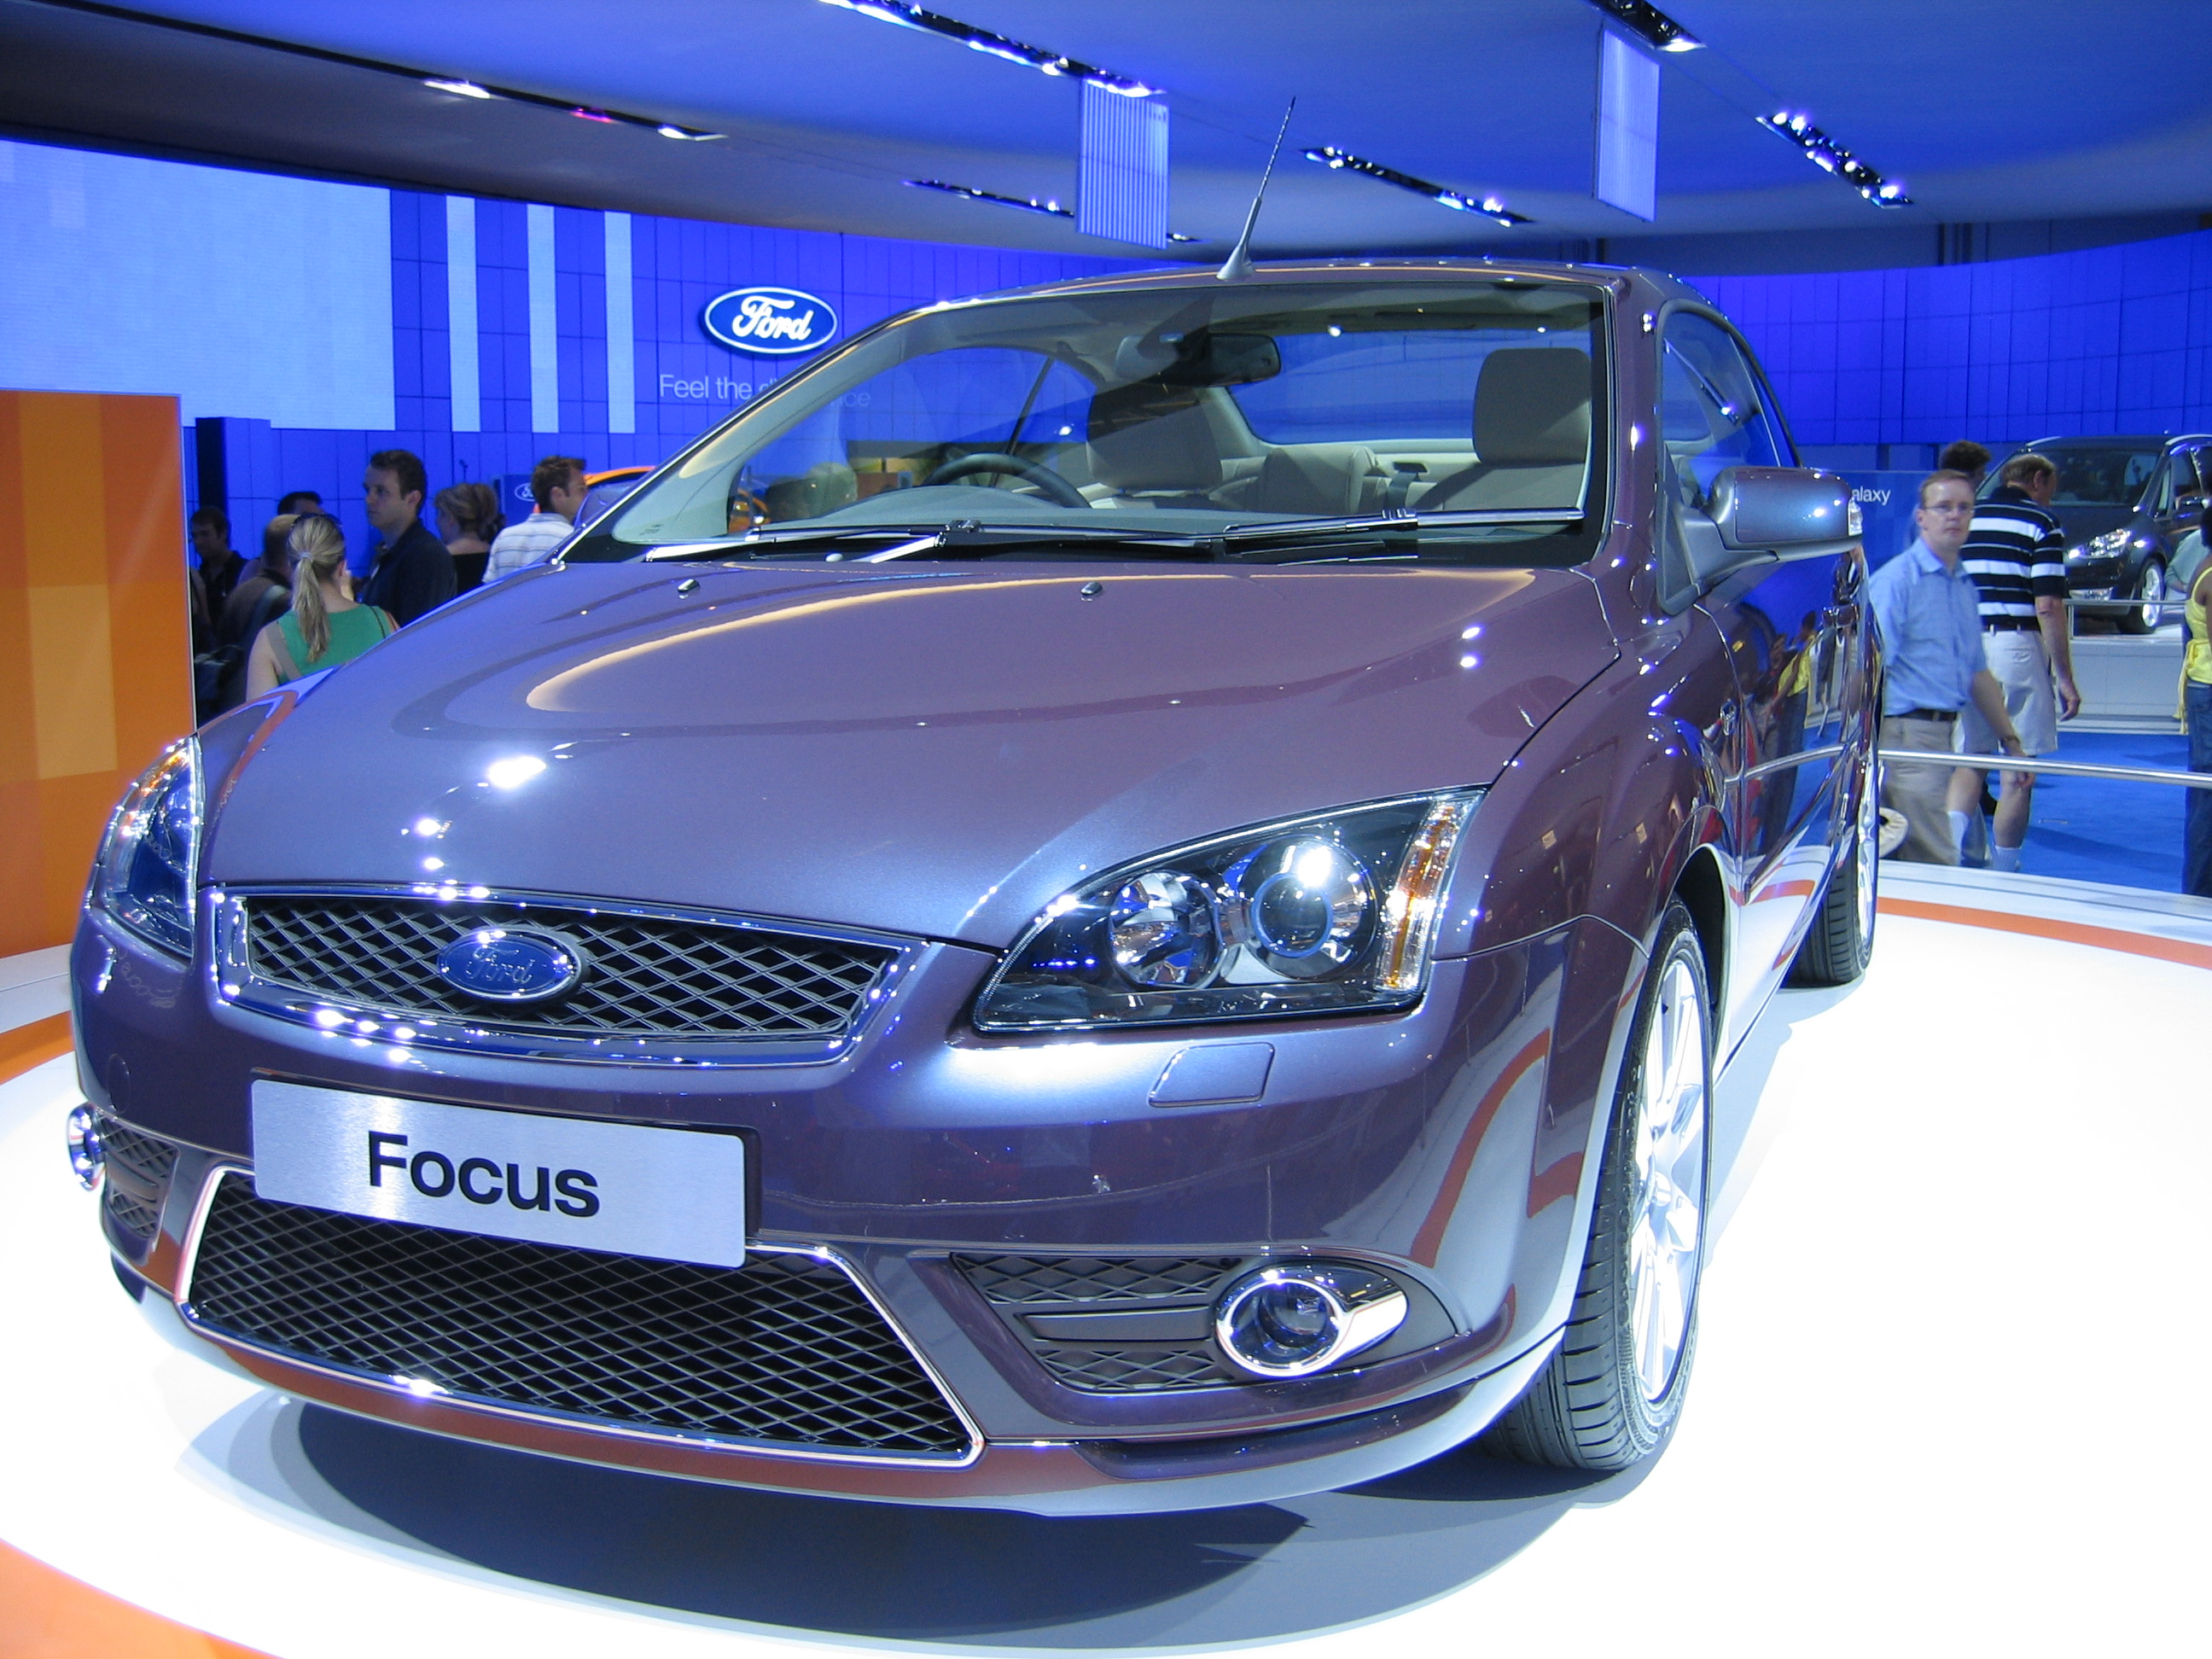 ford focus coupe cabriolet used cars. Black Bedroom Furniture Sets. Home Design Ideas